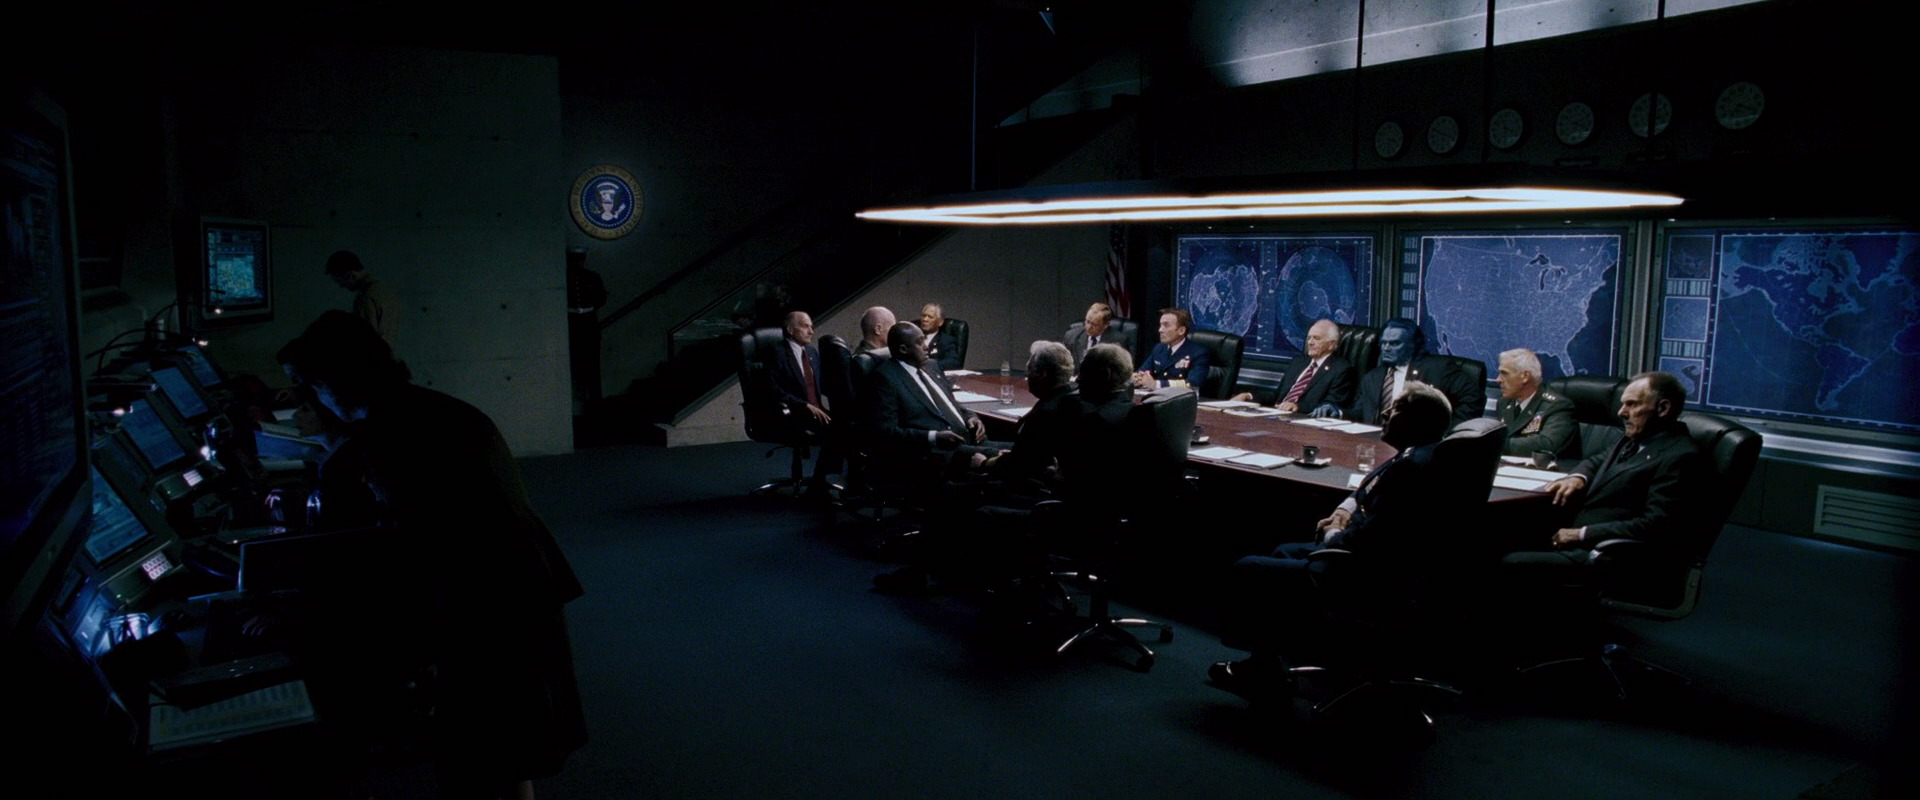 Situation Room | X-Men Movies Wiki | FANDOM powered by Wikia